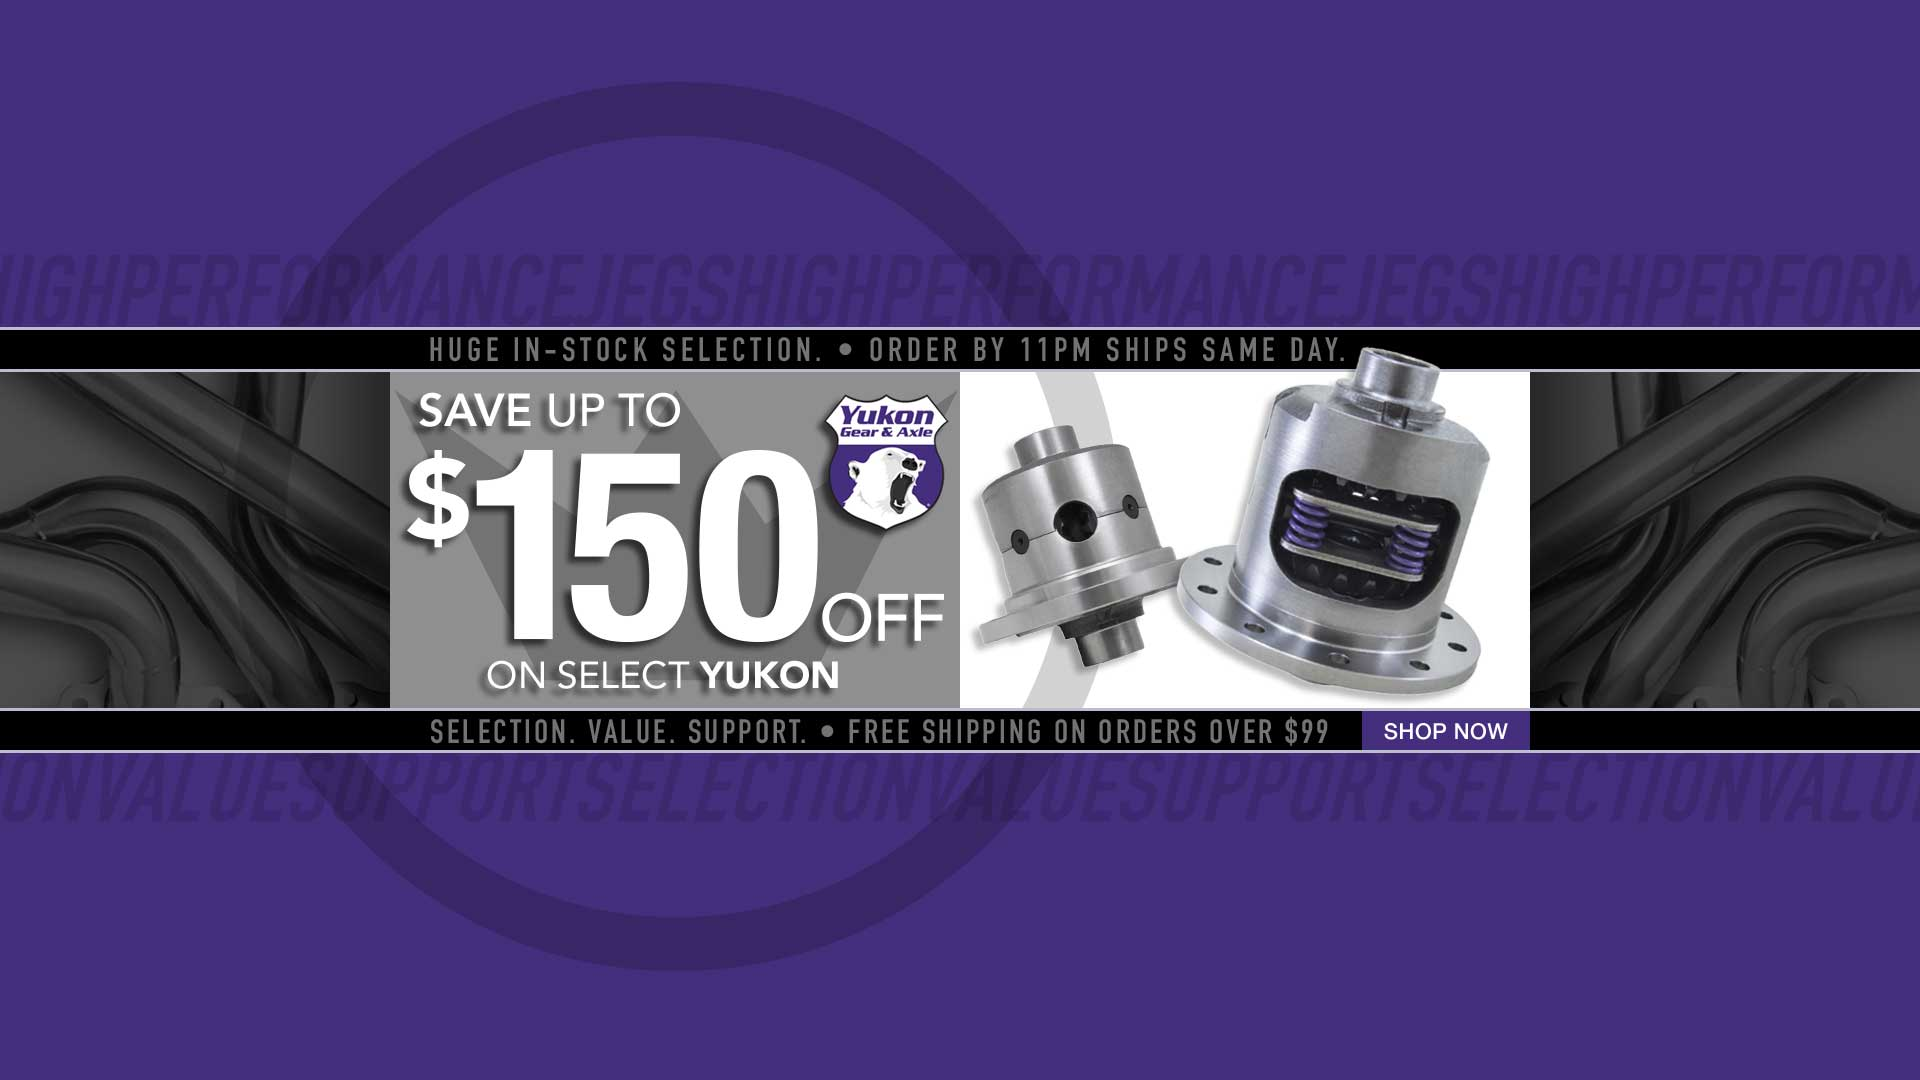 Save up to $150 off Yukon Gear Products